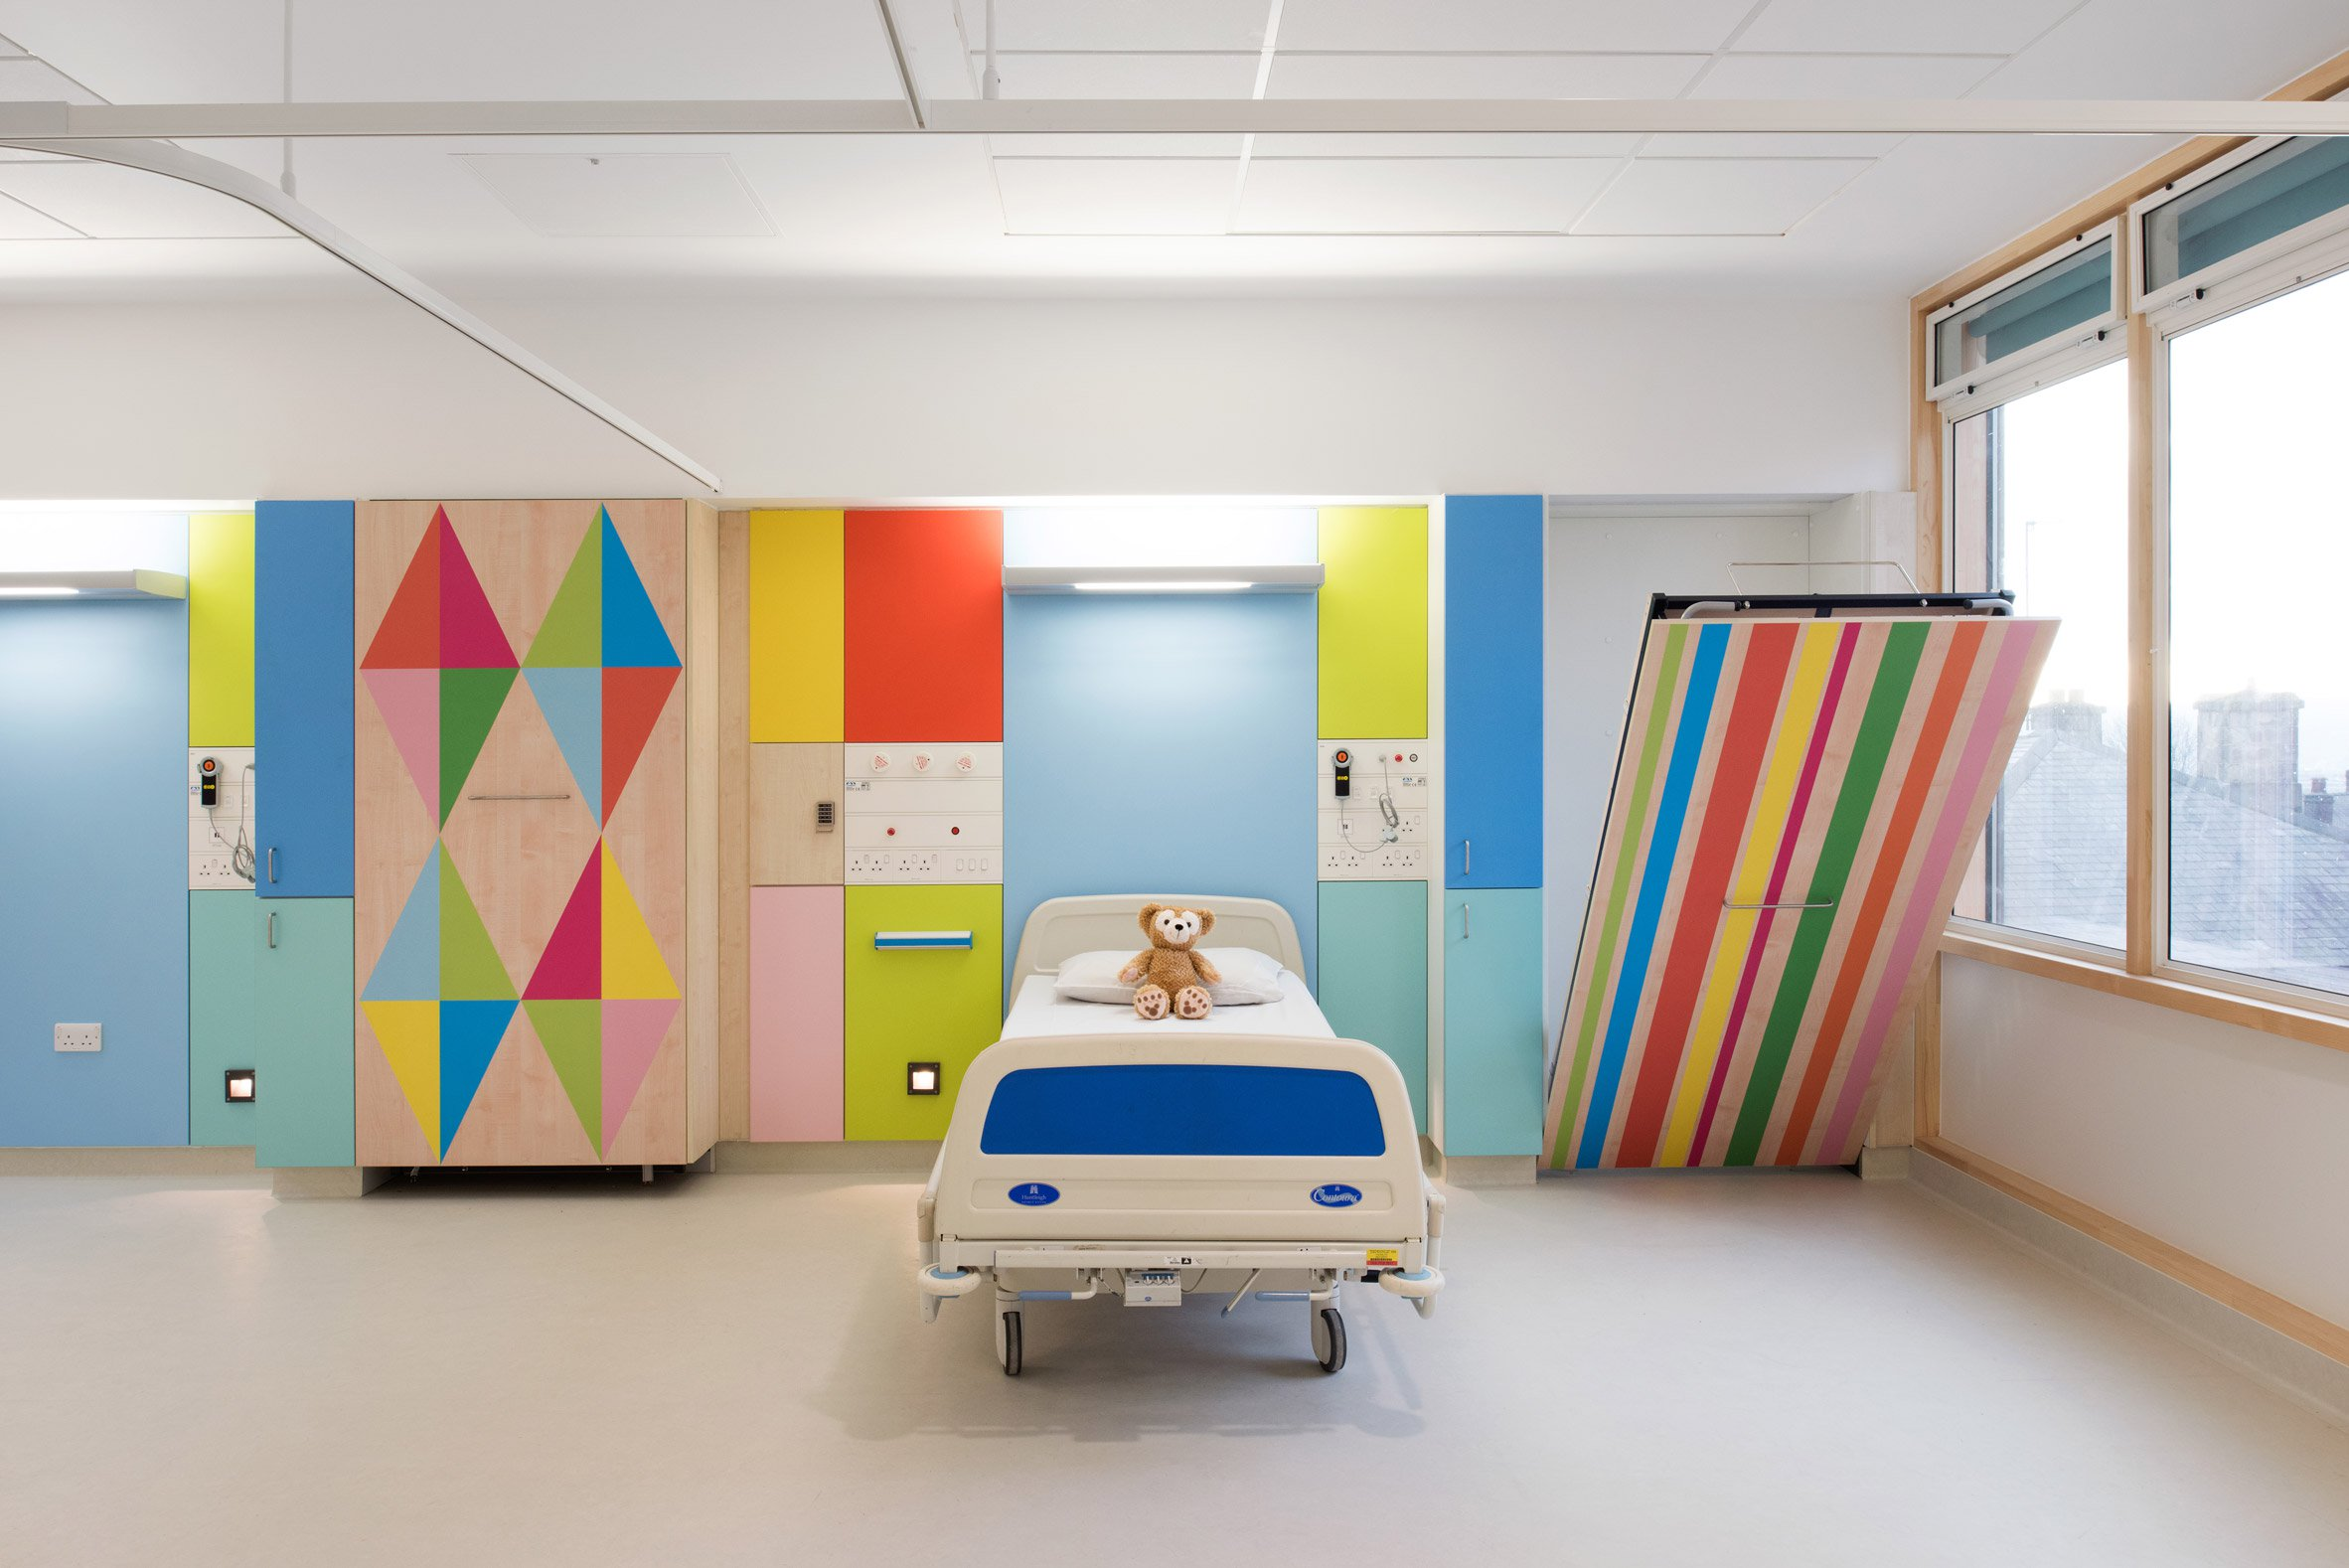 Inpatient Bedrooms and Shared Bays at Sheffield Children's Hospital - CODAworx